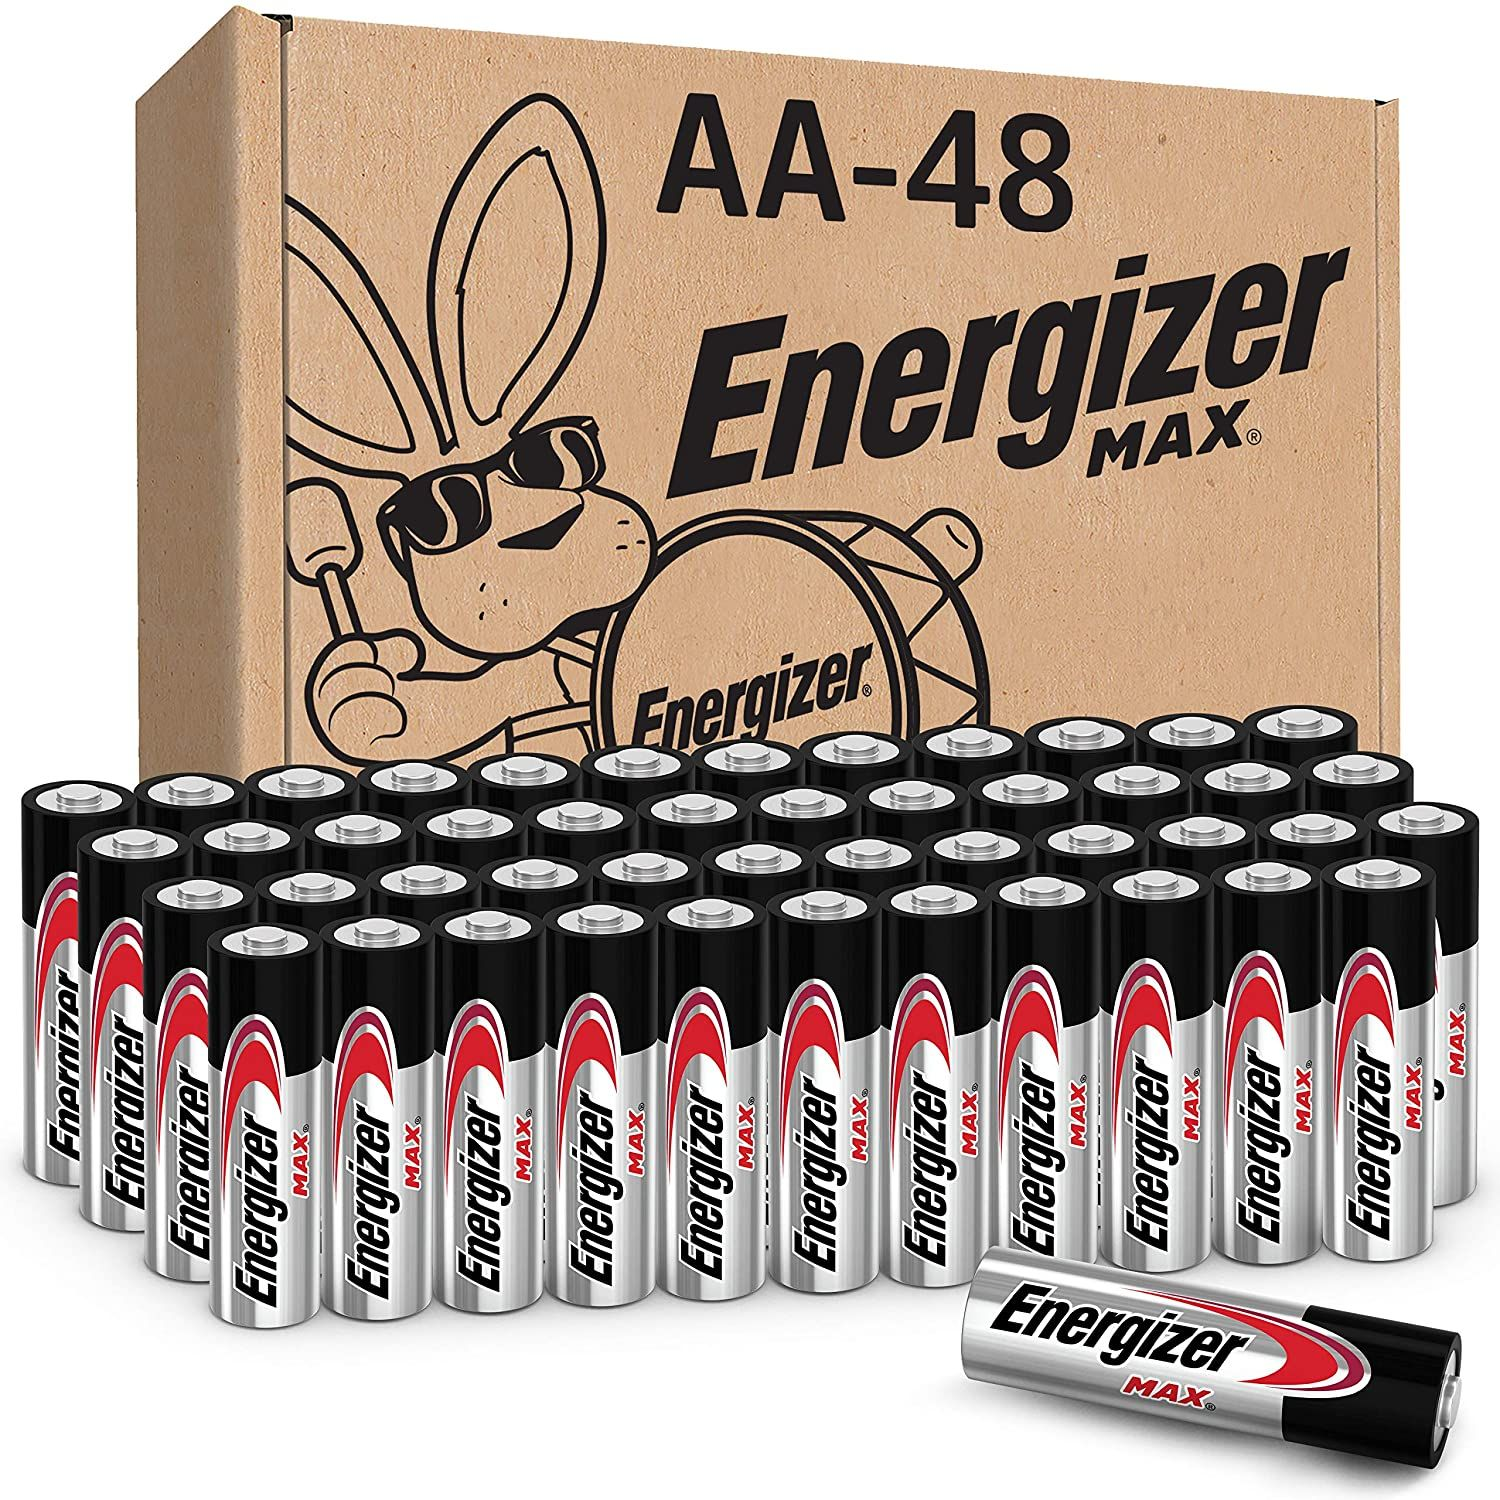 Energizer Aa Batteries 48 Count Double A Max Alkaline Battery In 2020 Energizer Battery Alkaline Battery Energizer